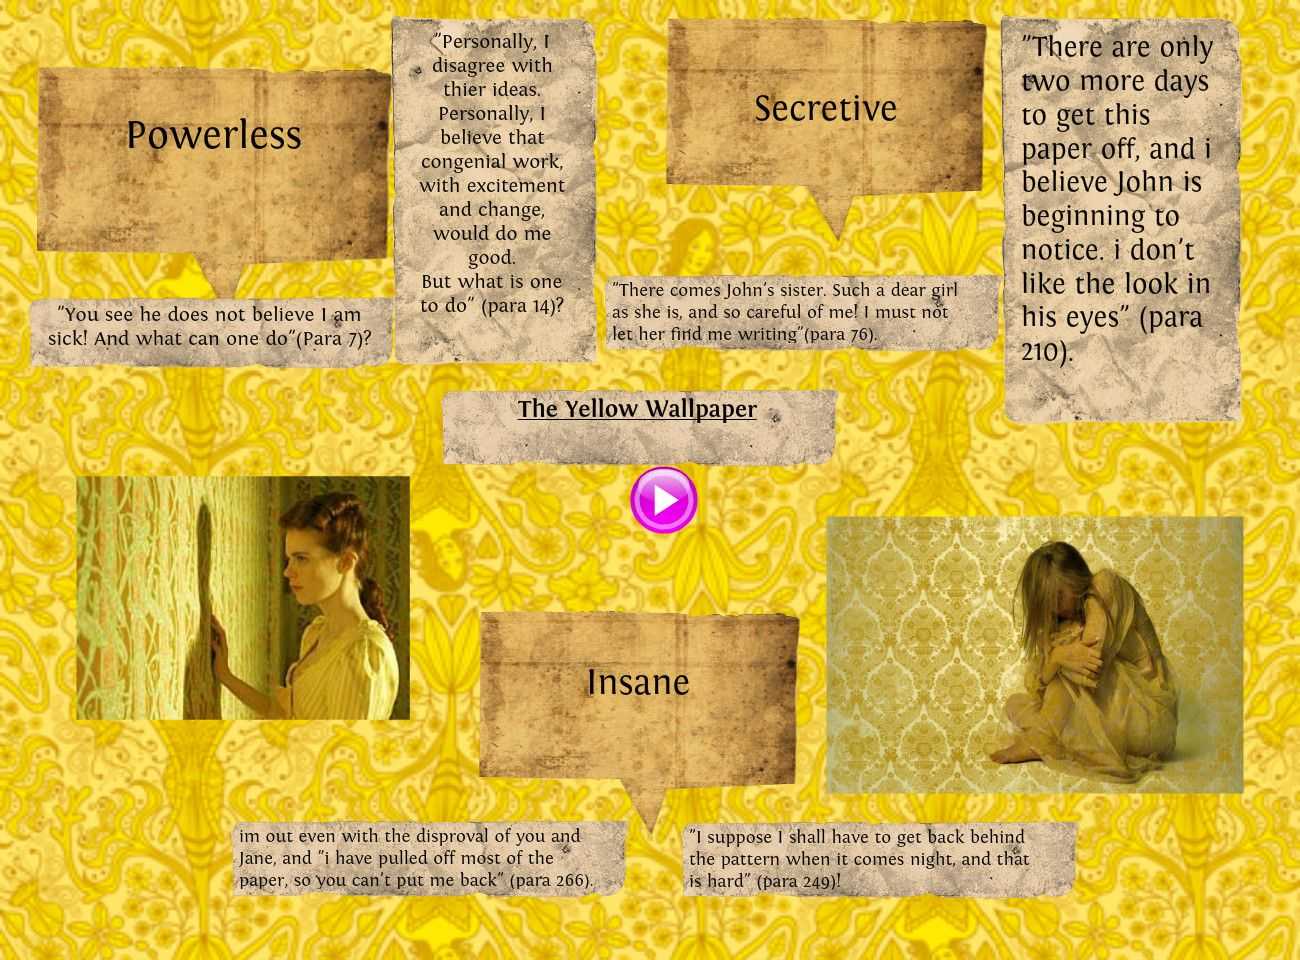 essay about the yellow wallpaper story  setting of the yellow wallpaper essay about the yellow wallpaper story